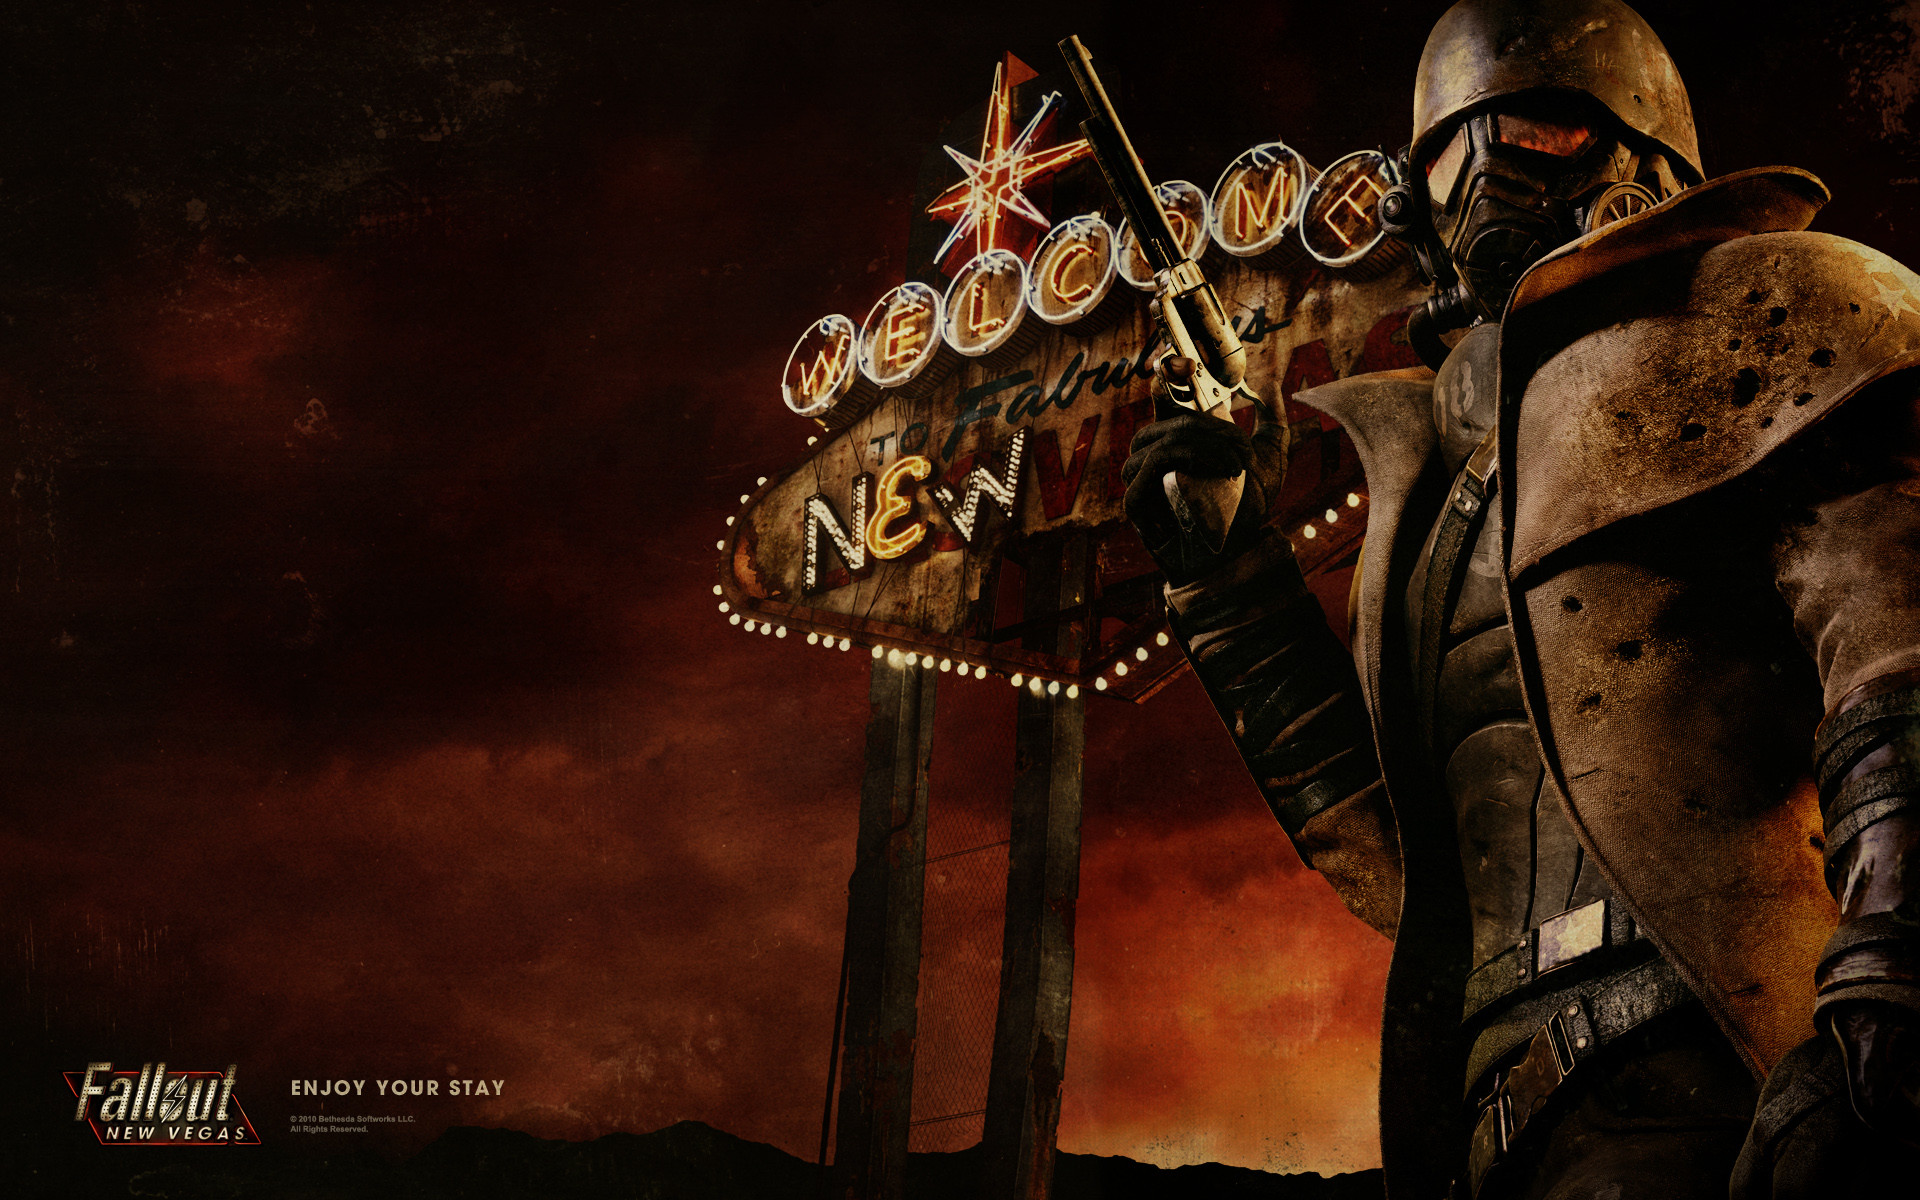 1920x1200 iPhone plus Fallout new vegas Games wallpaper Mask tattoo | HD Wallpapers |  Pinterest | Fallout and Wallpaper